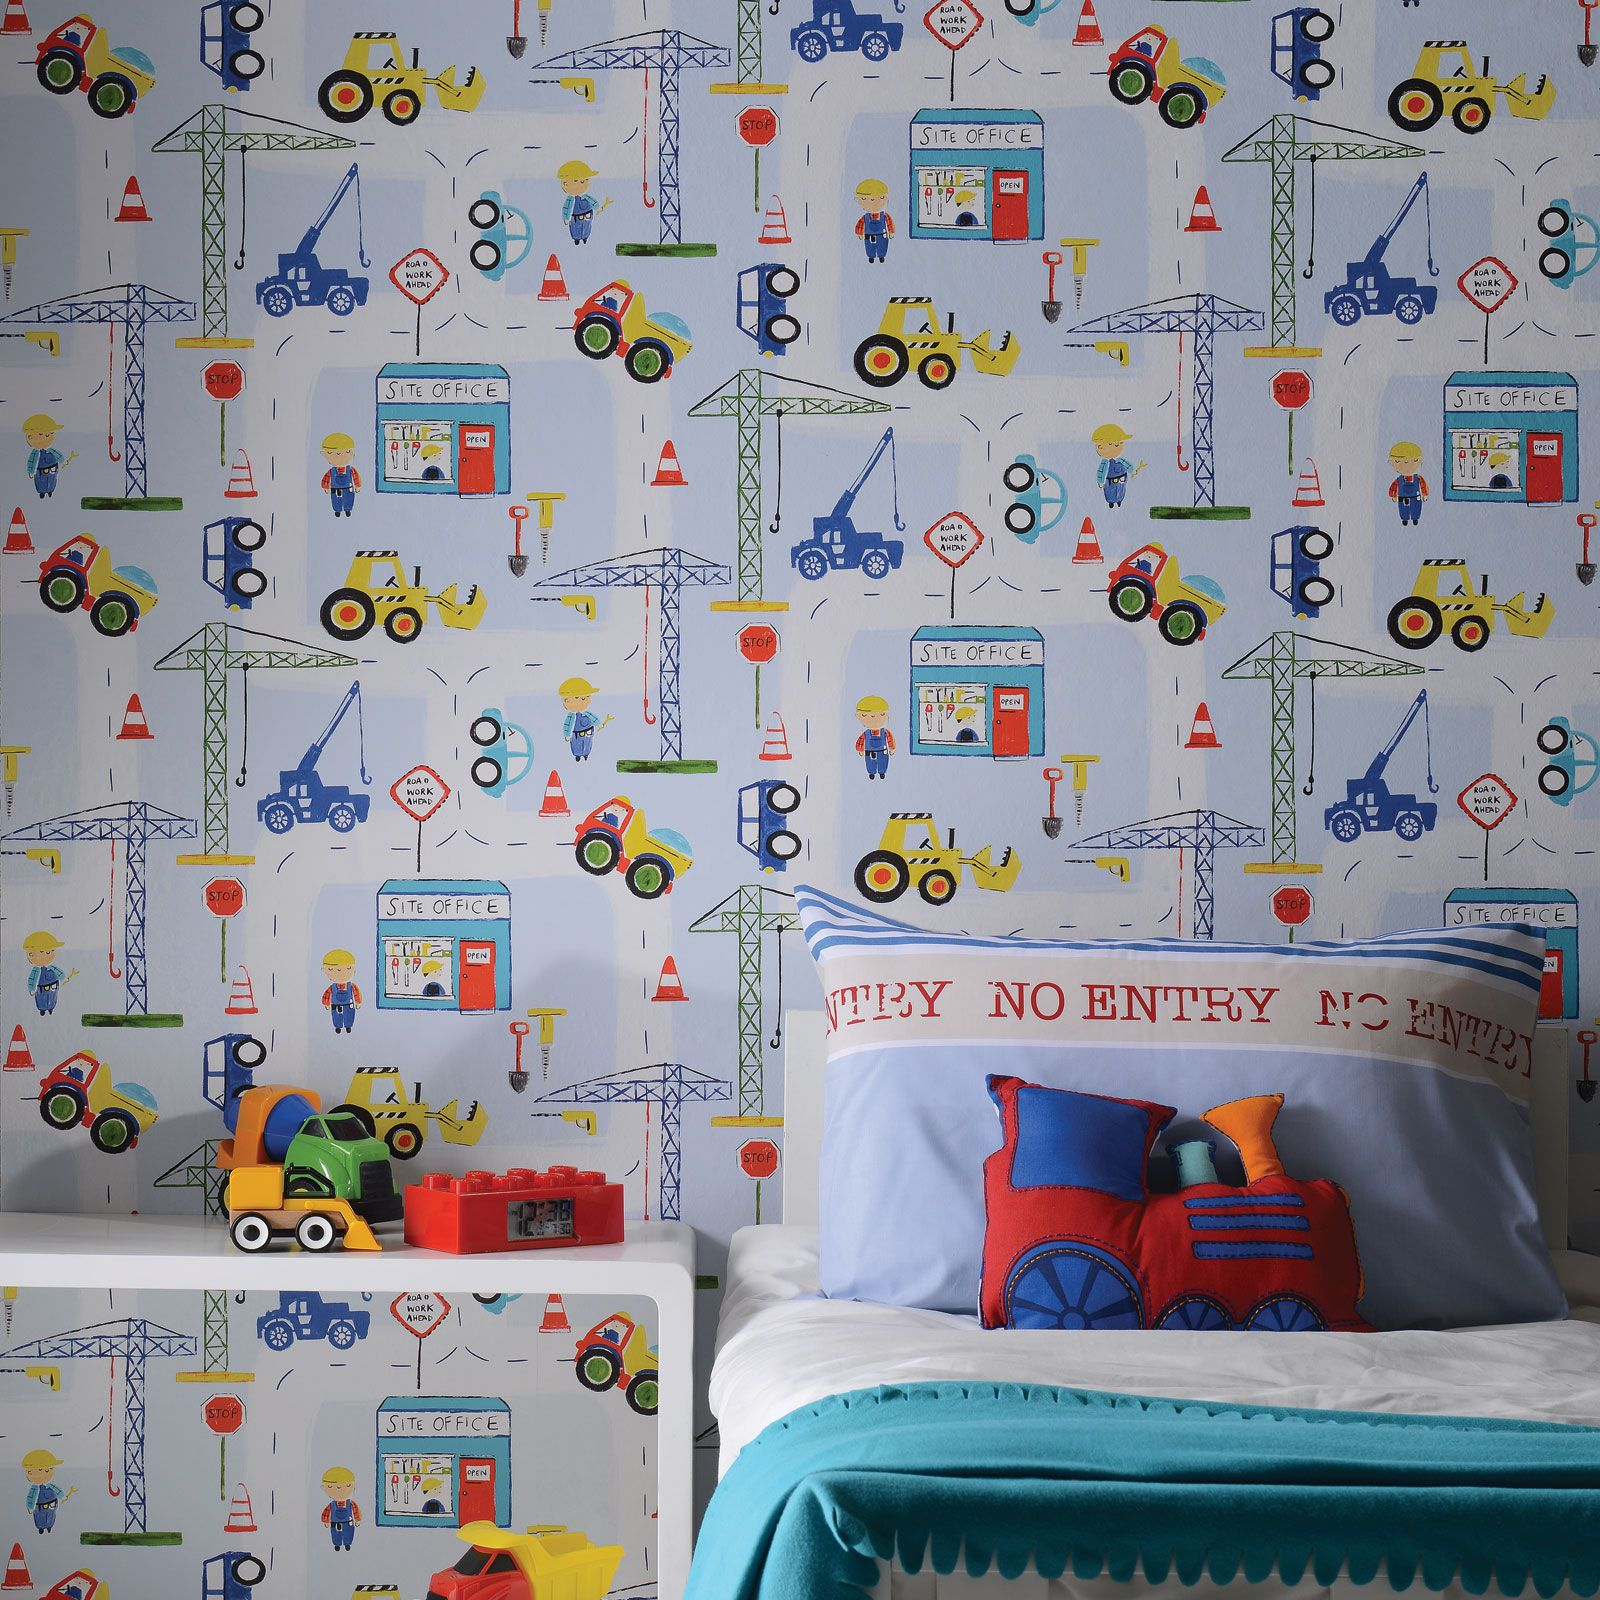 Boys Bedroom With Feature Wallpaper: TRANSPORT AND VEHICLES THEMED WALLPAPER & BORDERS BEDROOM